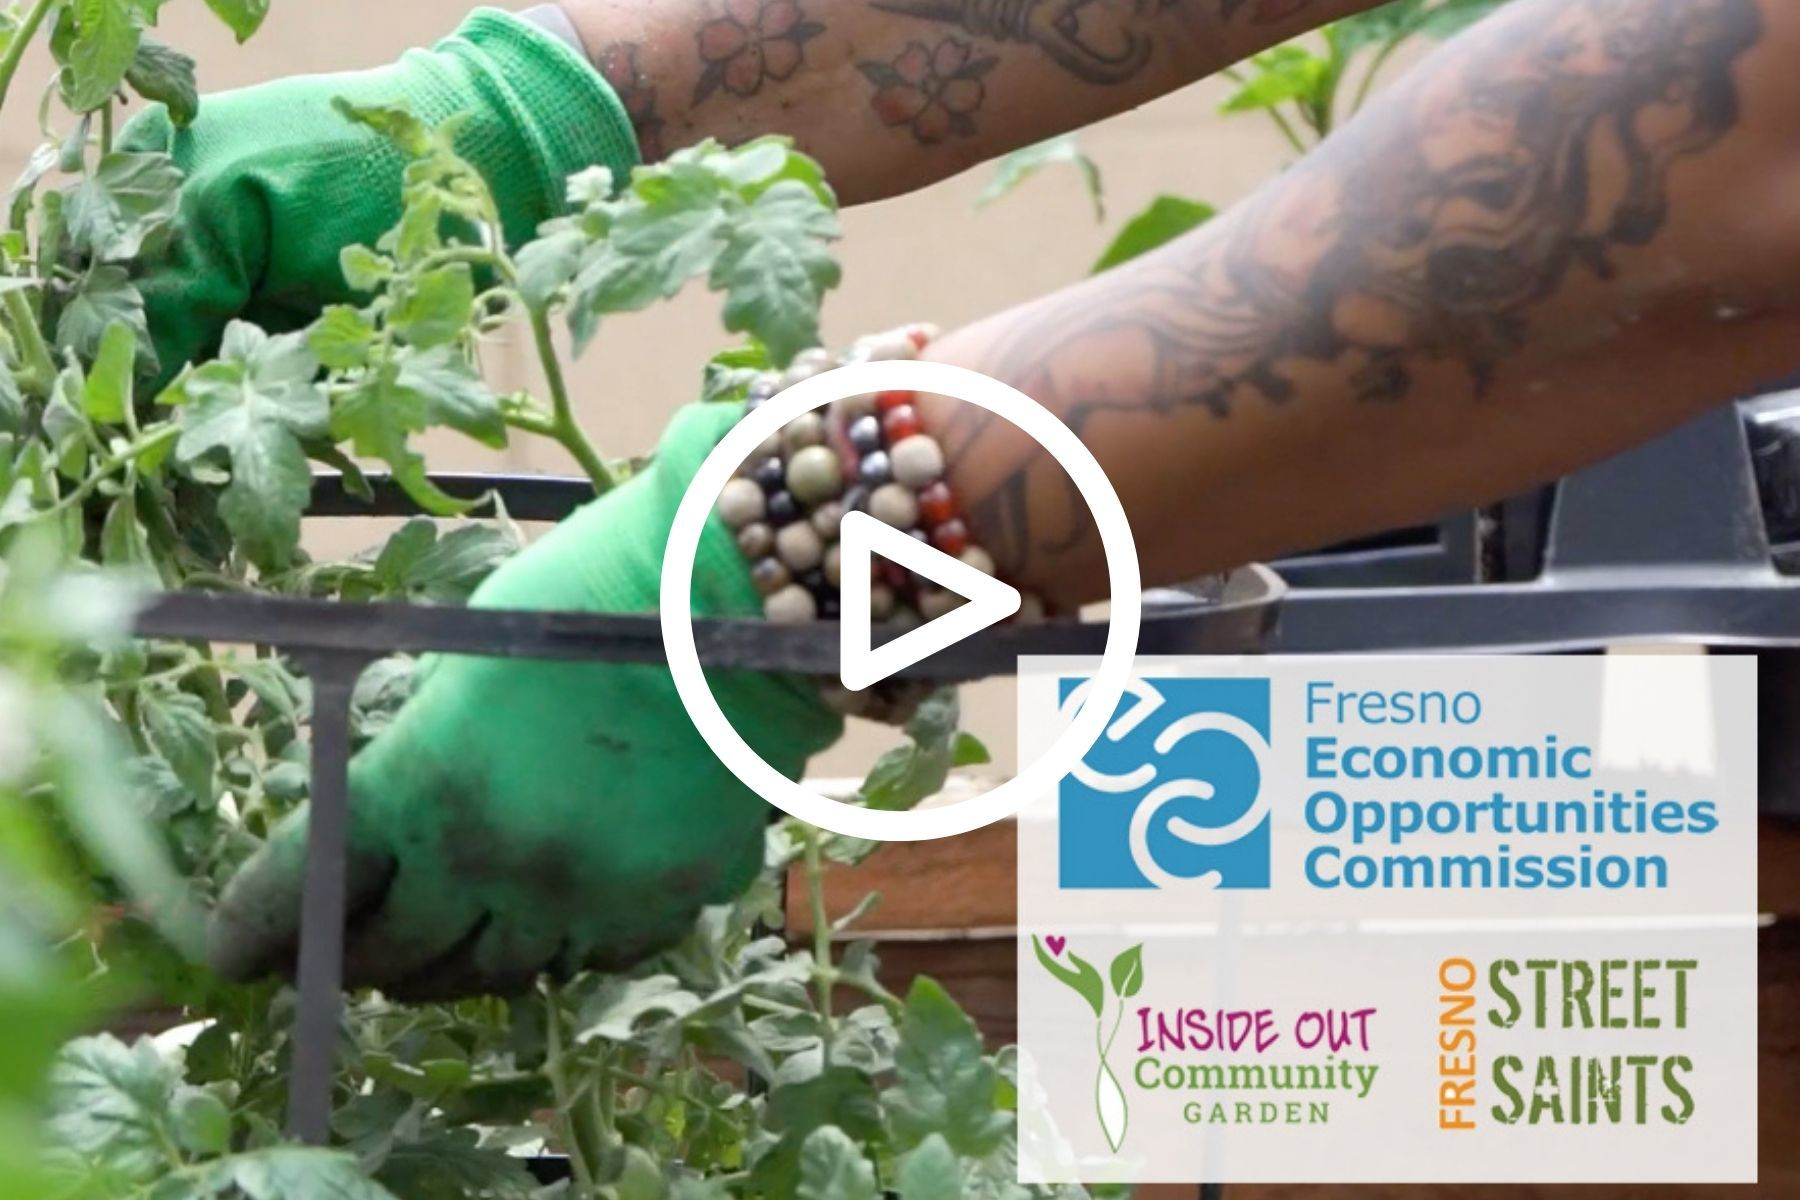 Image is a thumbnail of the Inside Out Community Garden video